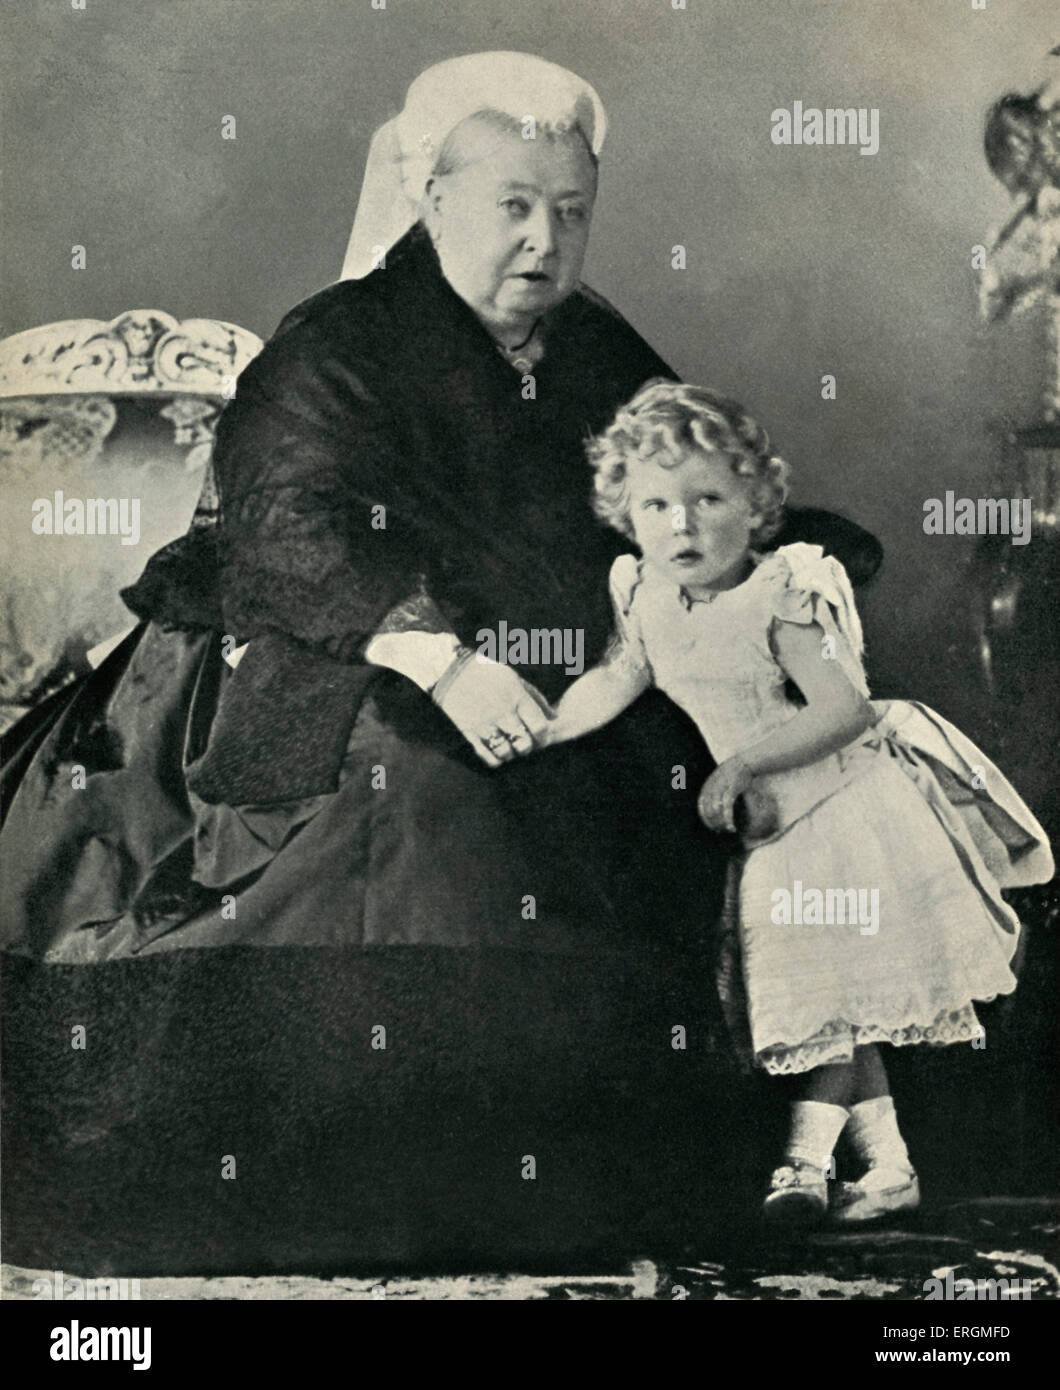 Queen Victoria (1819 -1901) with her great grandson, Prince Edward  (1894-1972) aged two and a half in 1896.